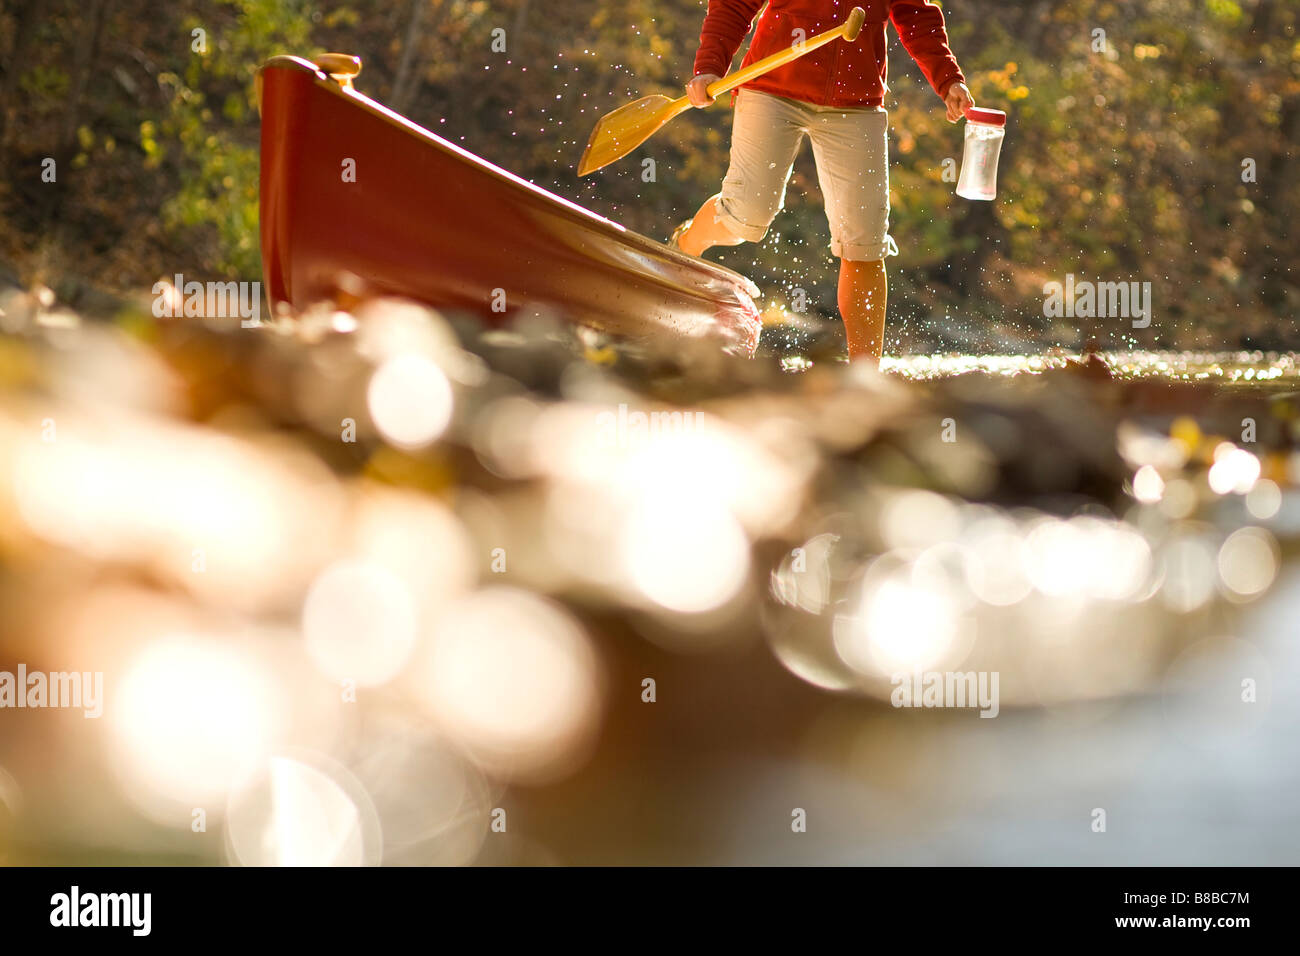 Woman stepping out of canoe in the river - Stock Image